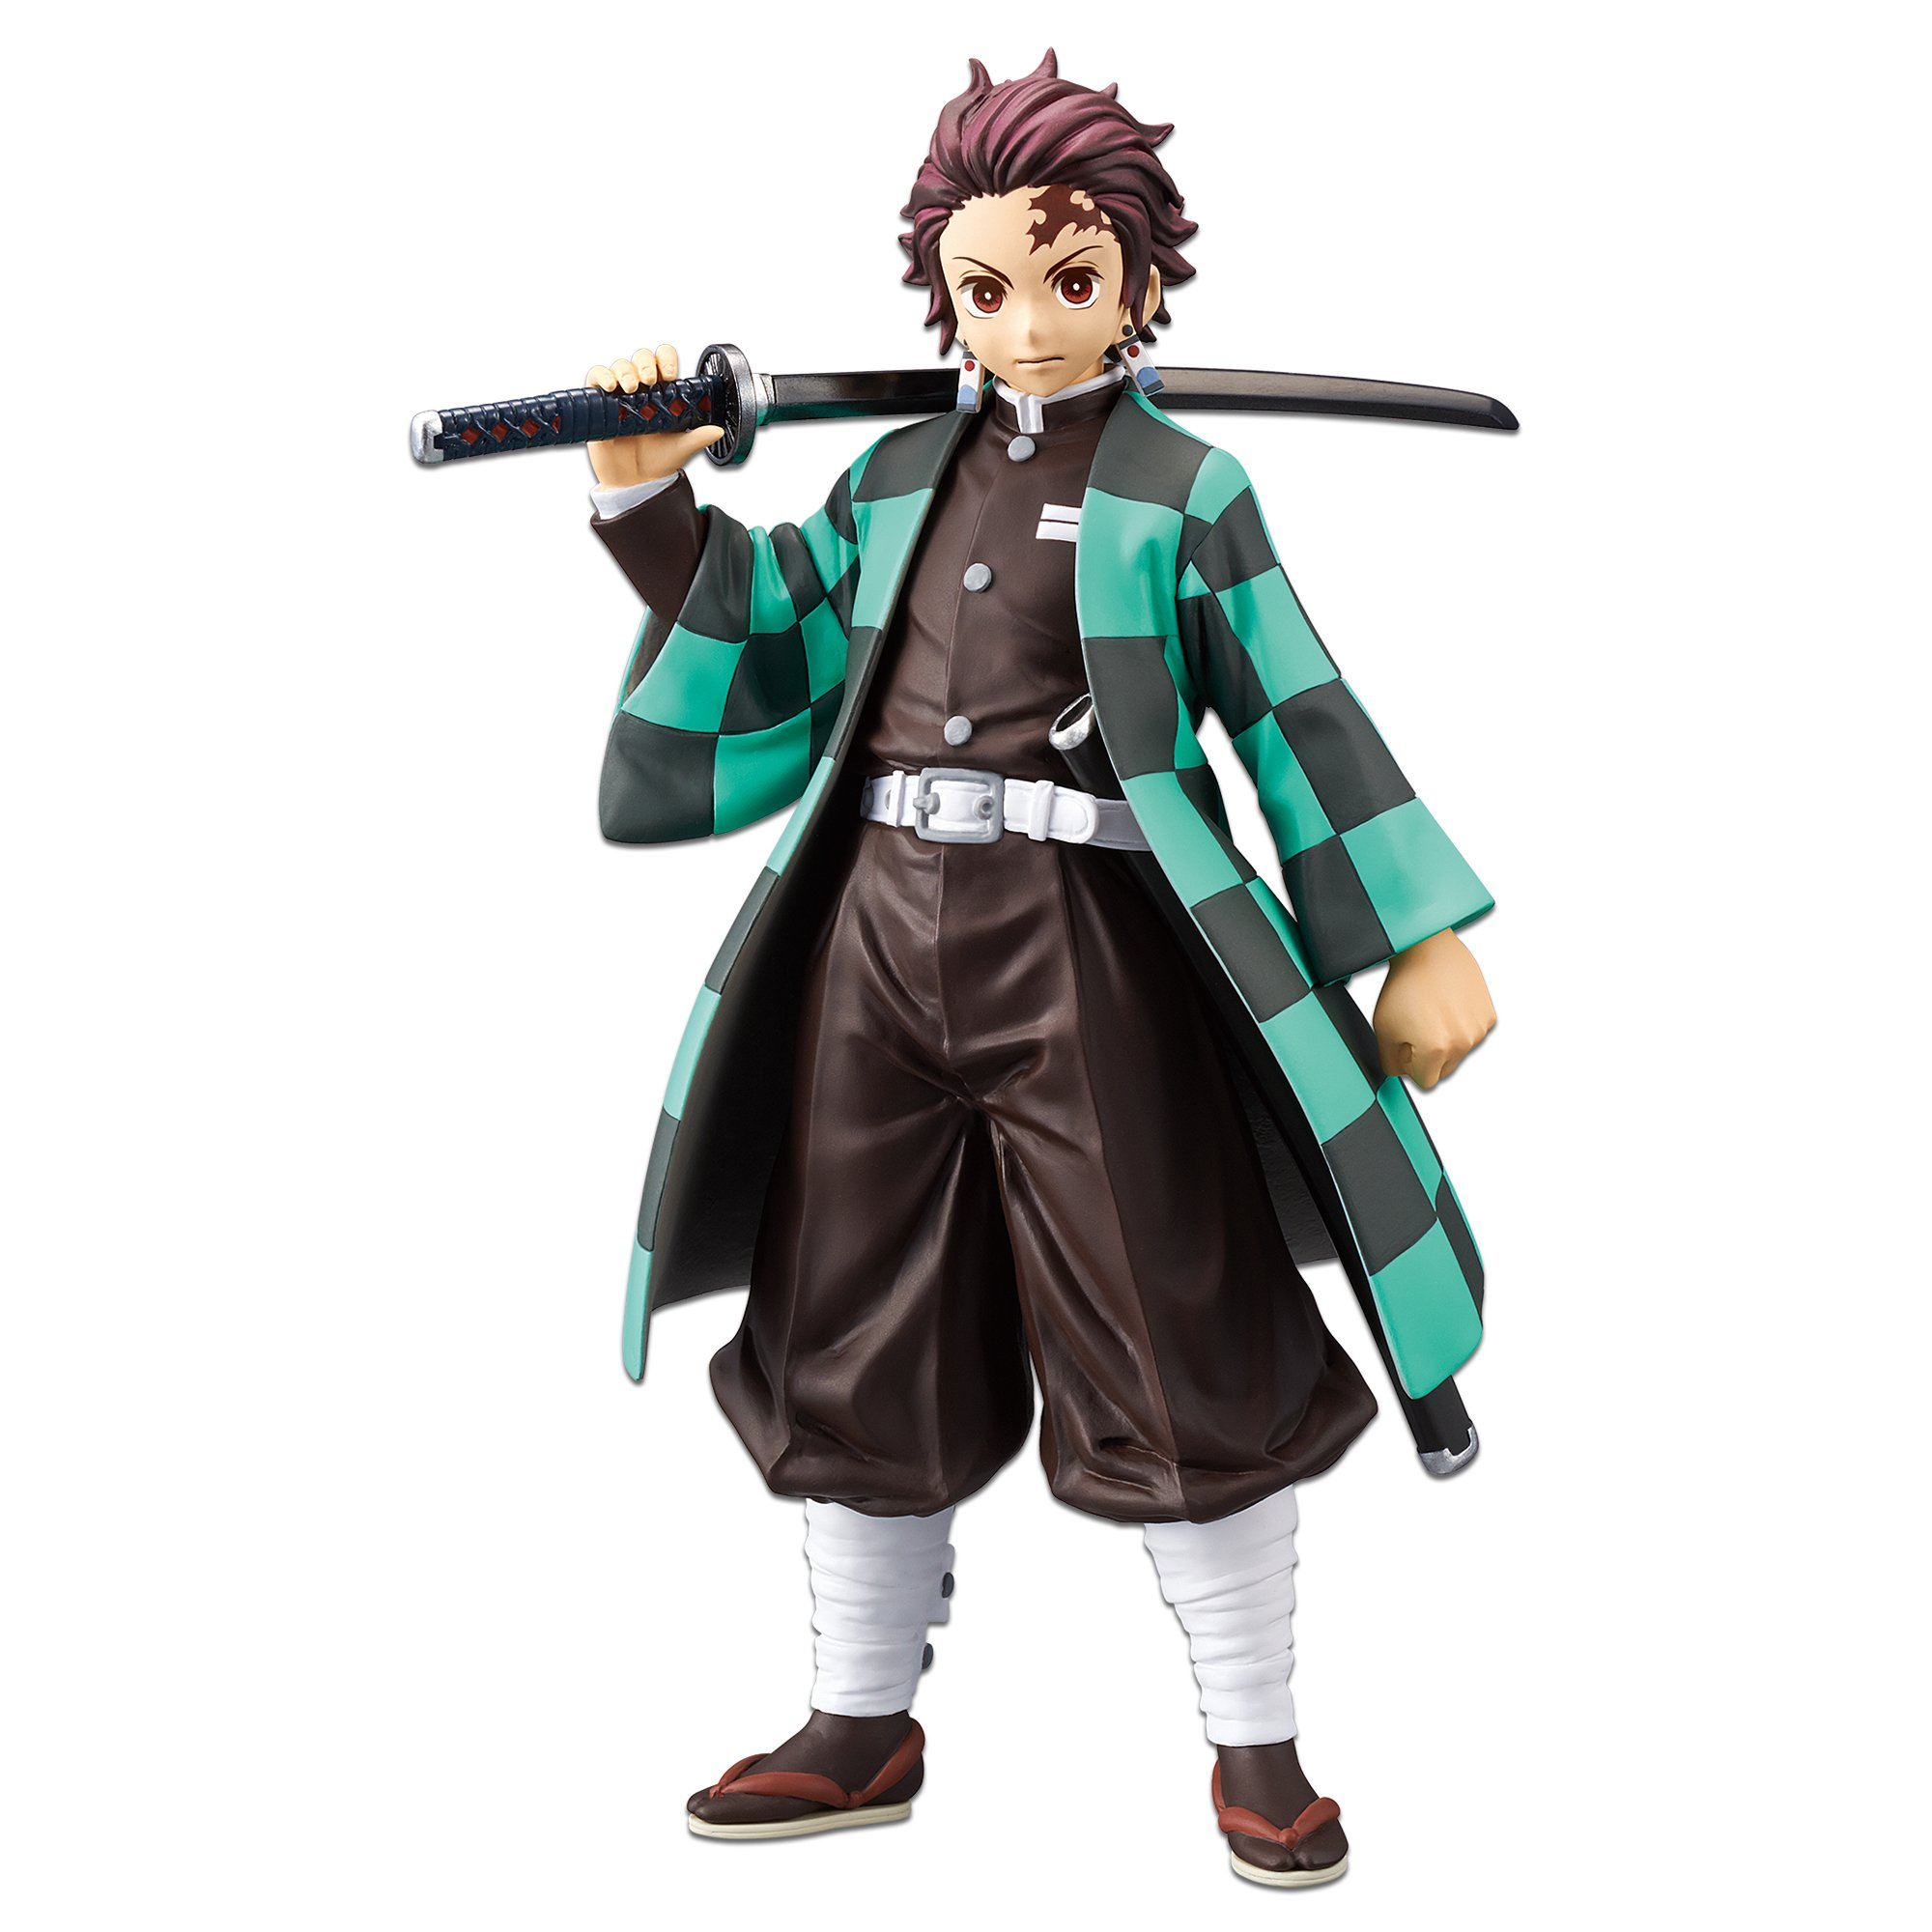 Tanjiro Kamado Demon Slayer Kimetsu no Yaiba Vol. 1 Figure (1)